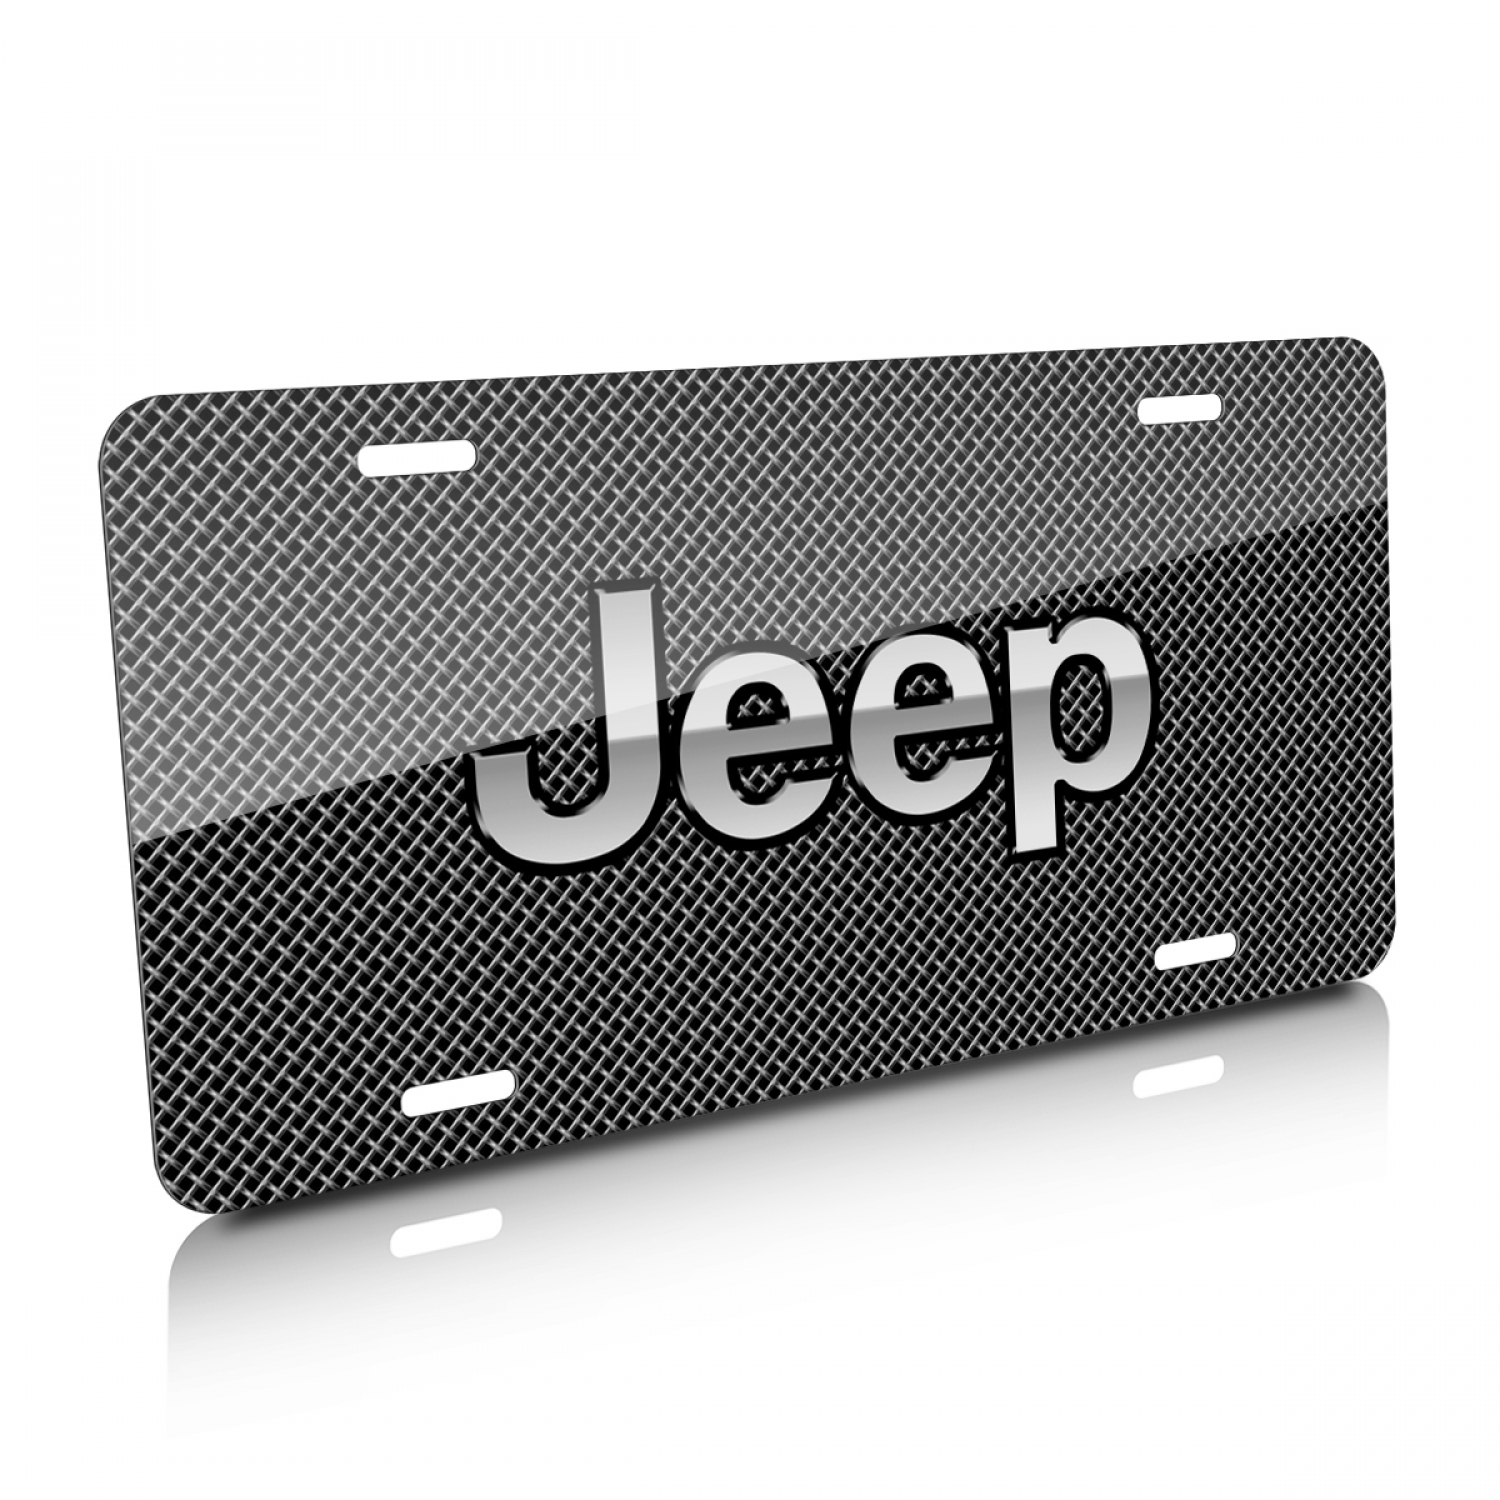 Jeep Mesh Grill Graphic Aluminum License Plate